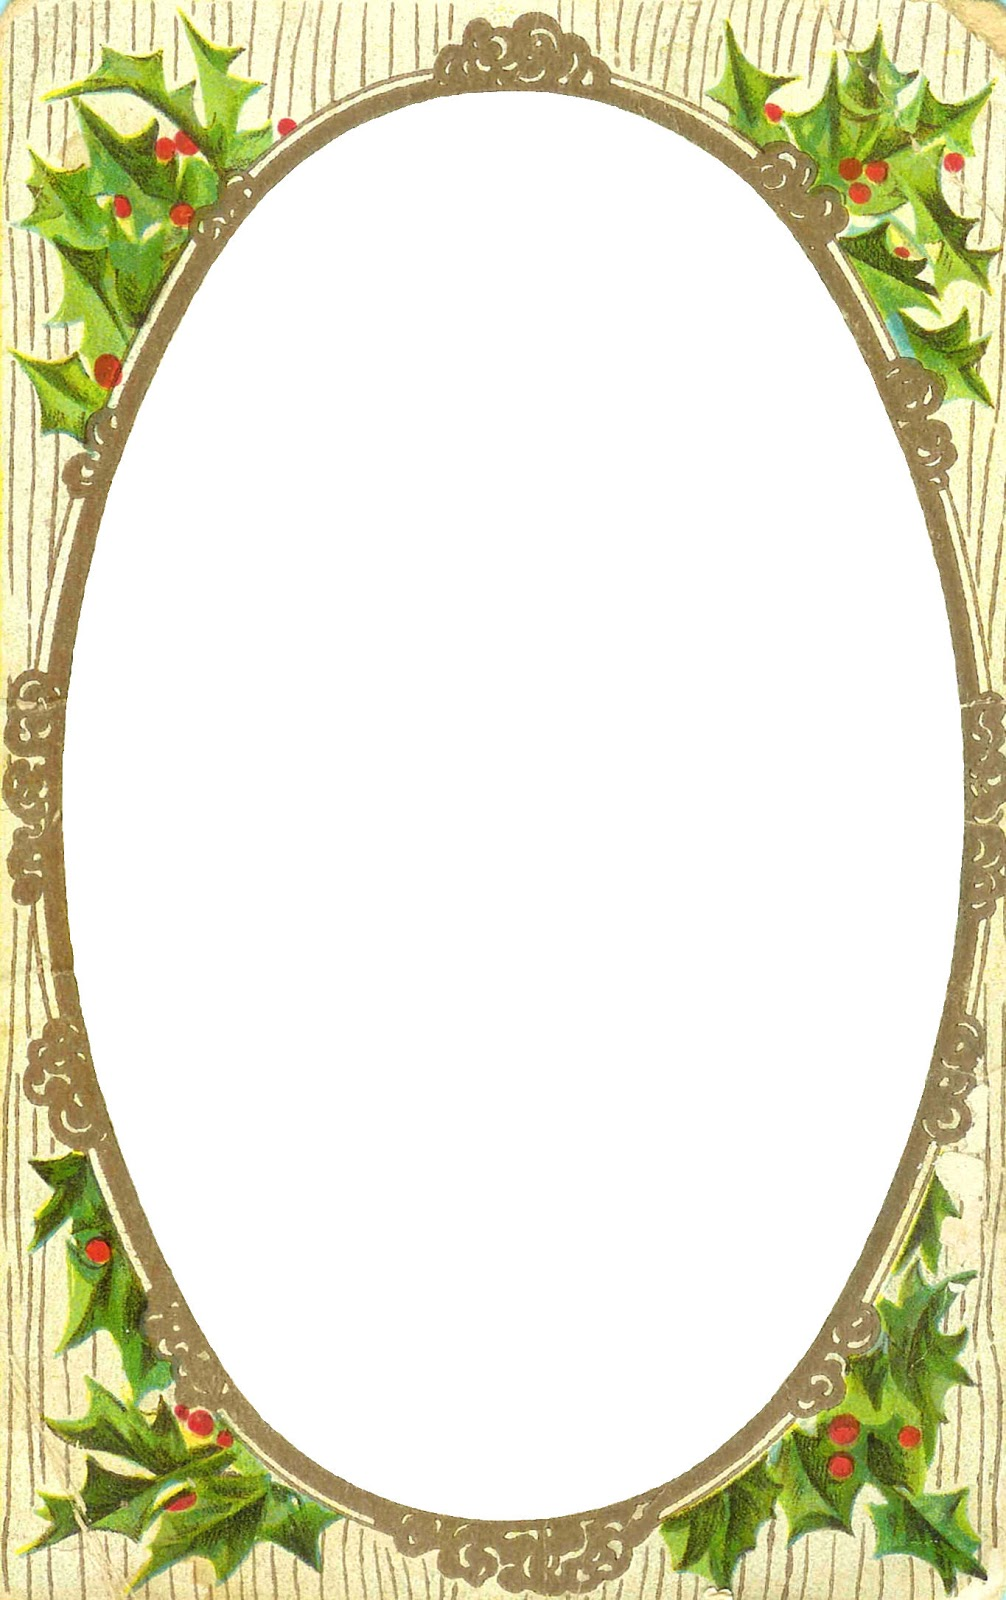 6 Images of Holiday Free Printable Frames